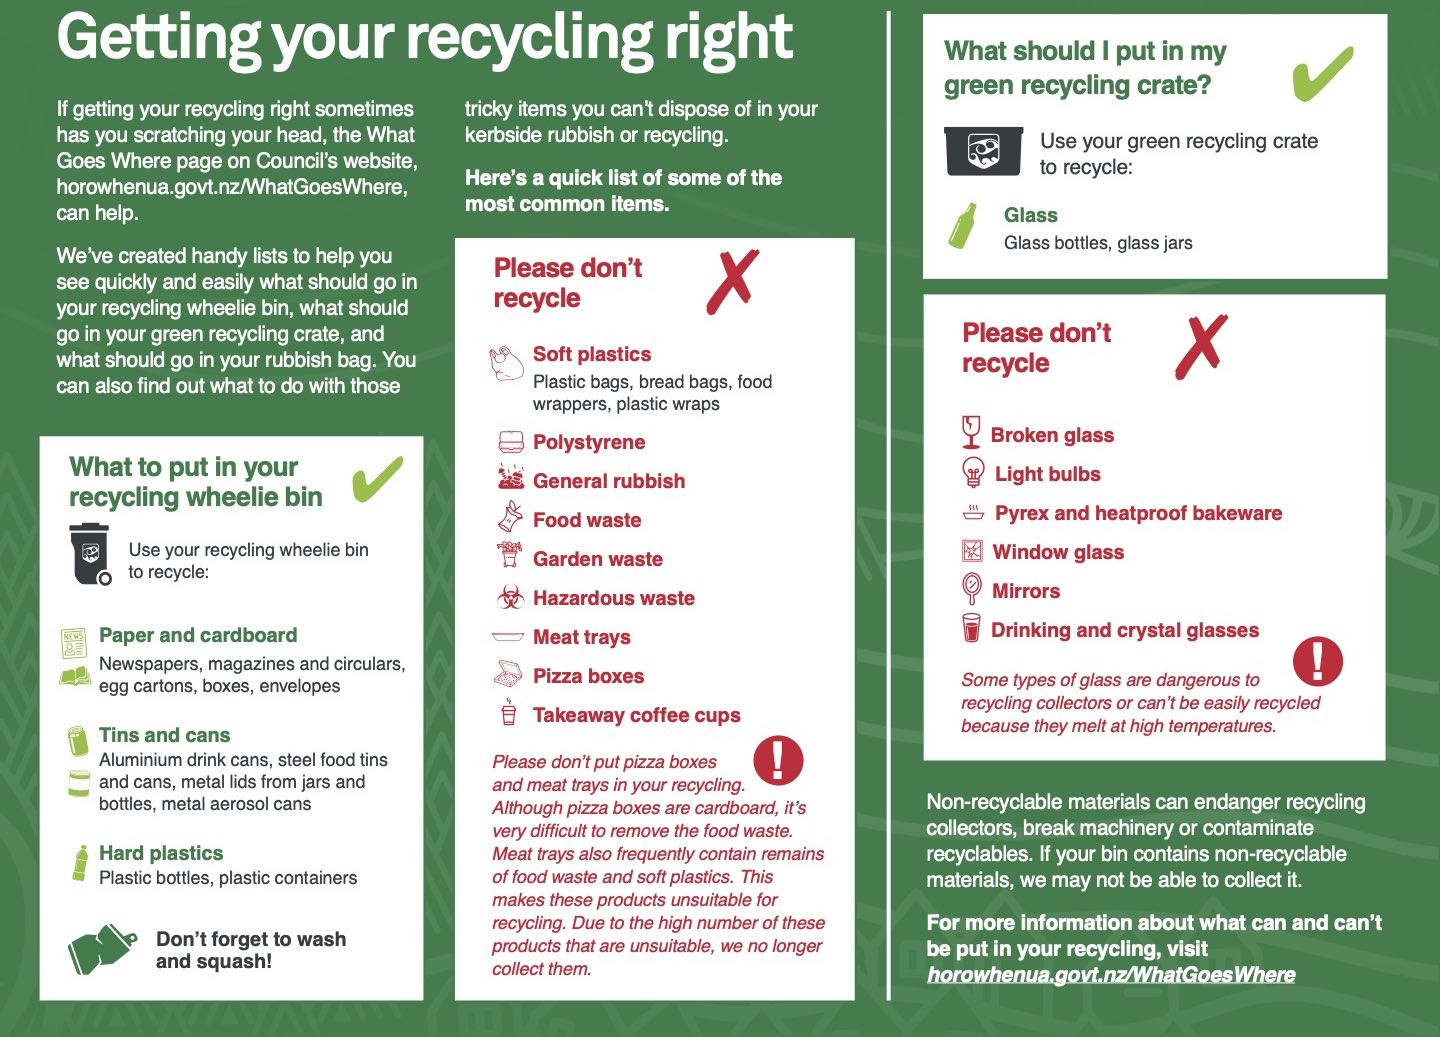 Get recycling right poster.